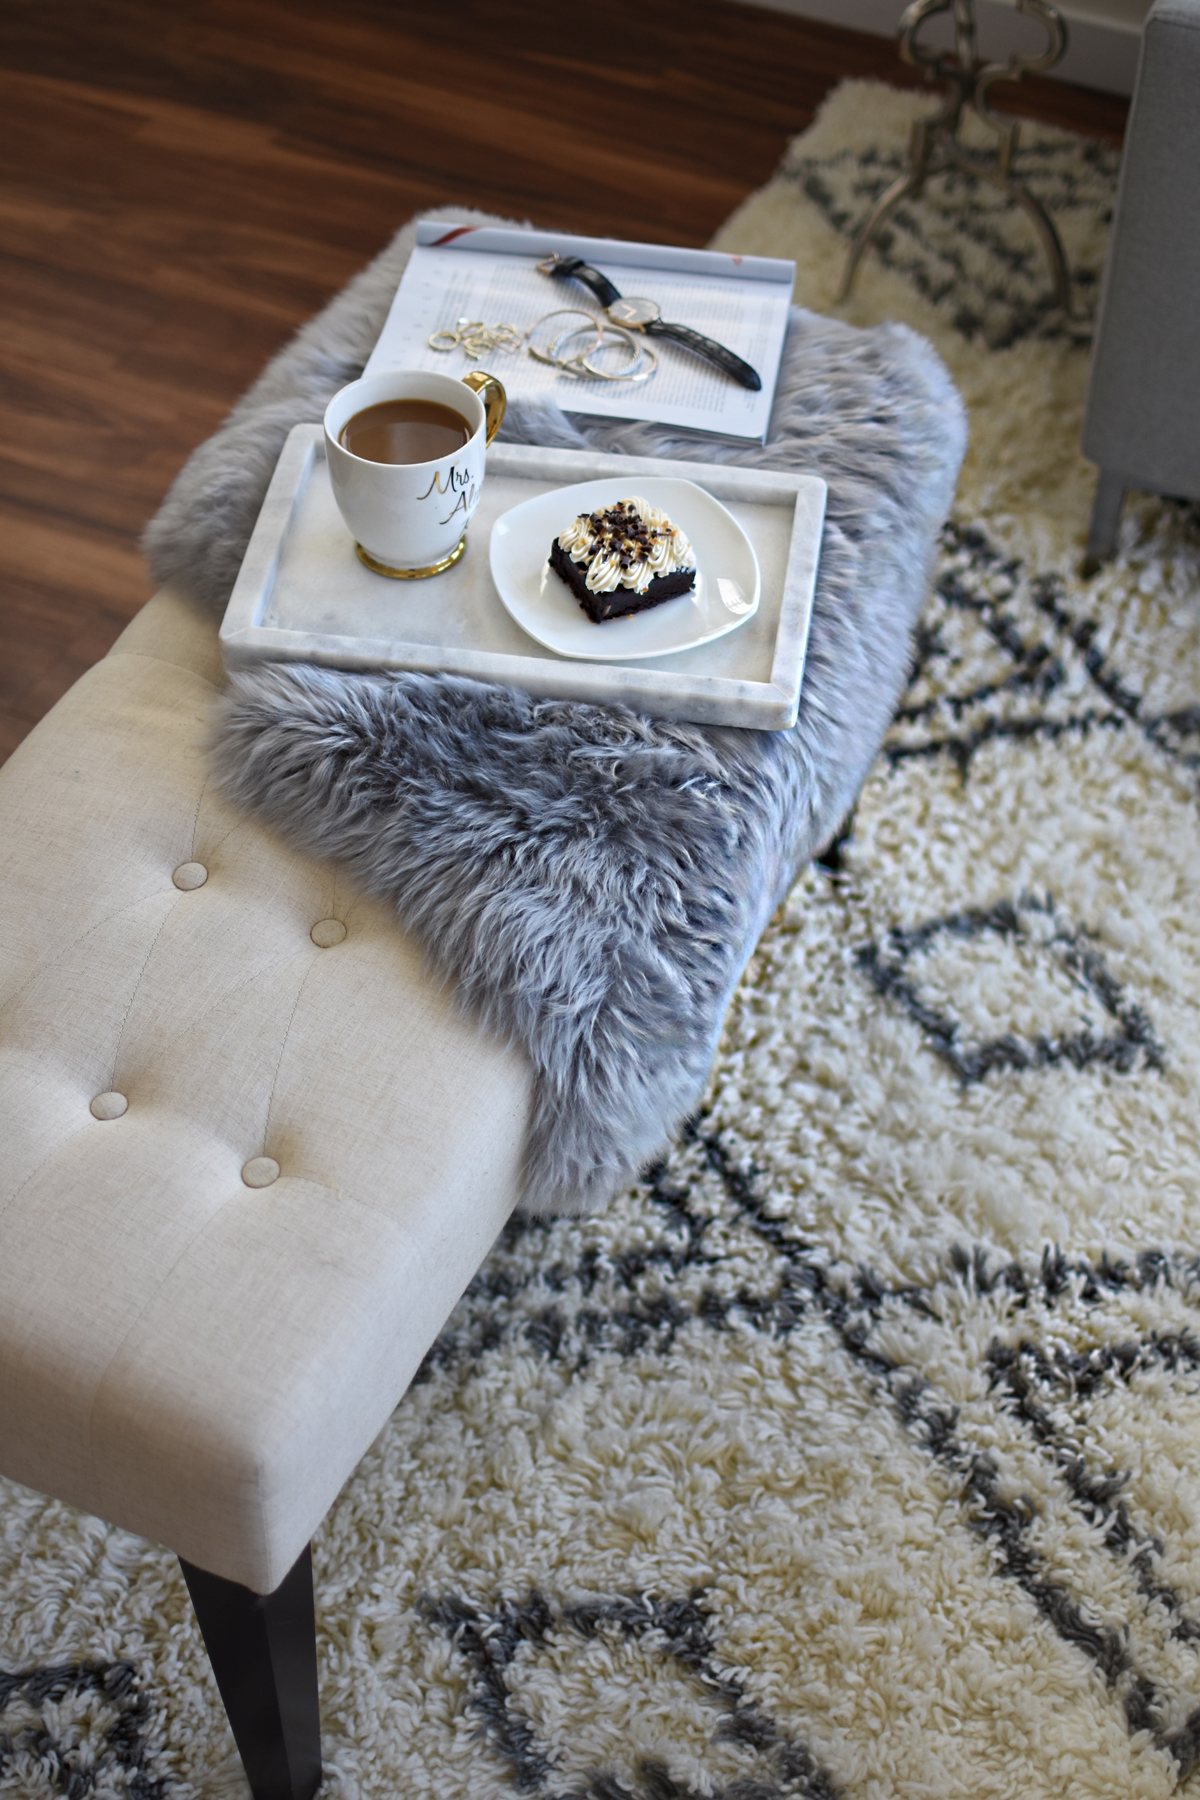 Living room decoration ideas featuring product from Article. The Taza rug, Velu pillows and Lanna throw